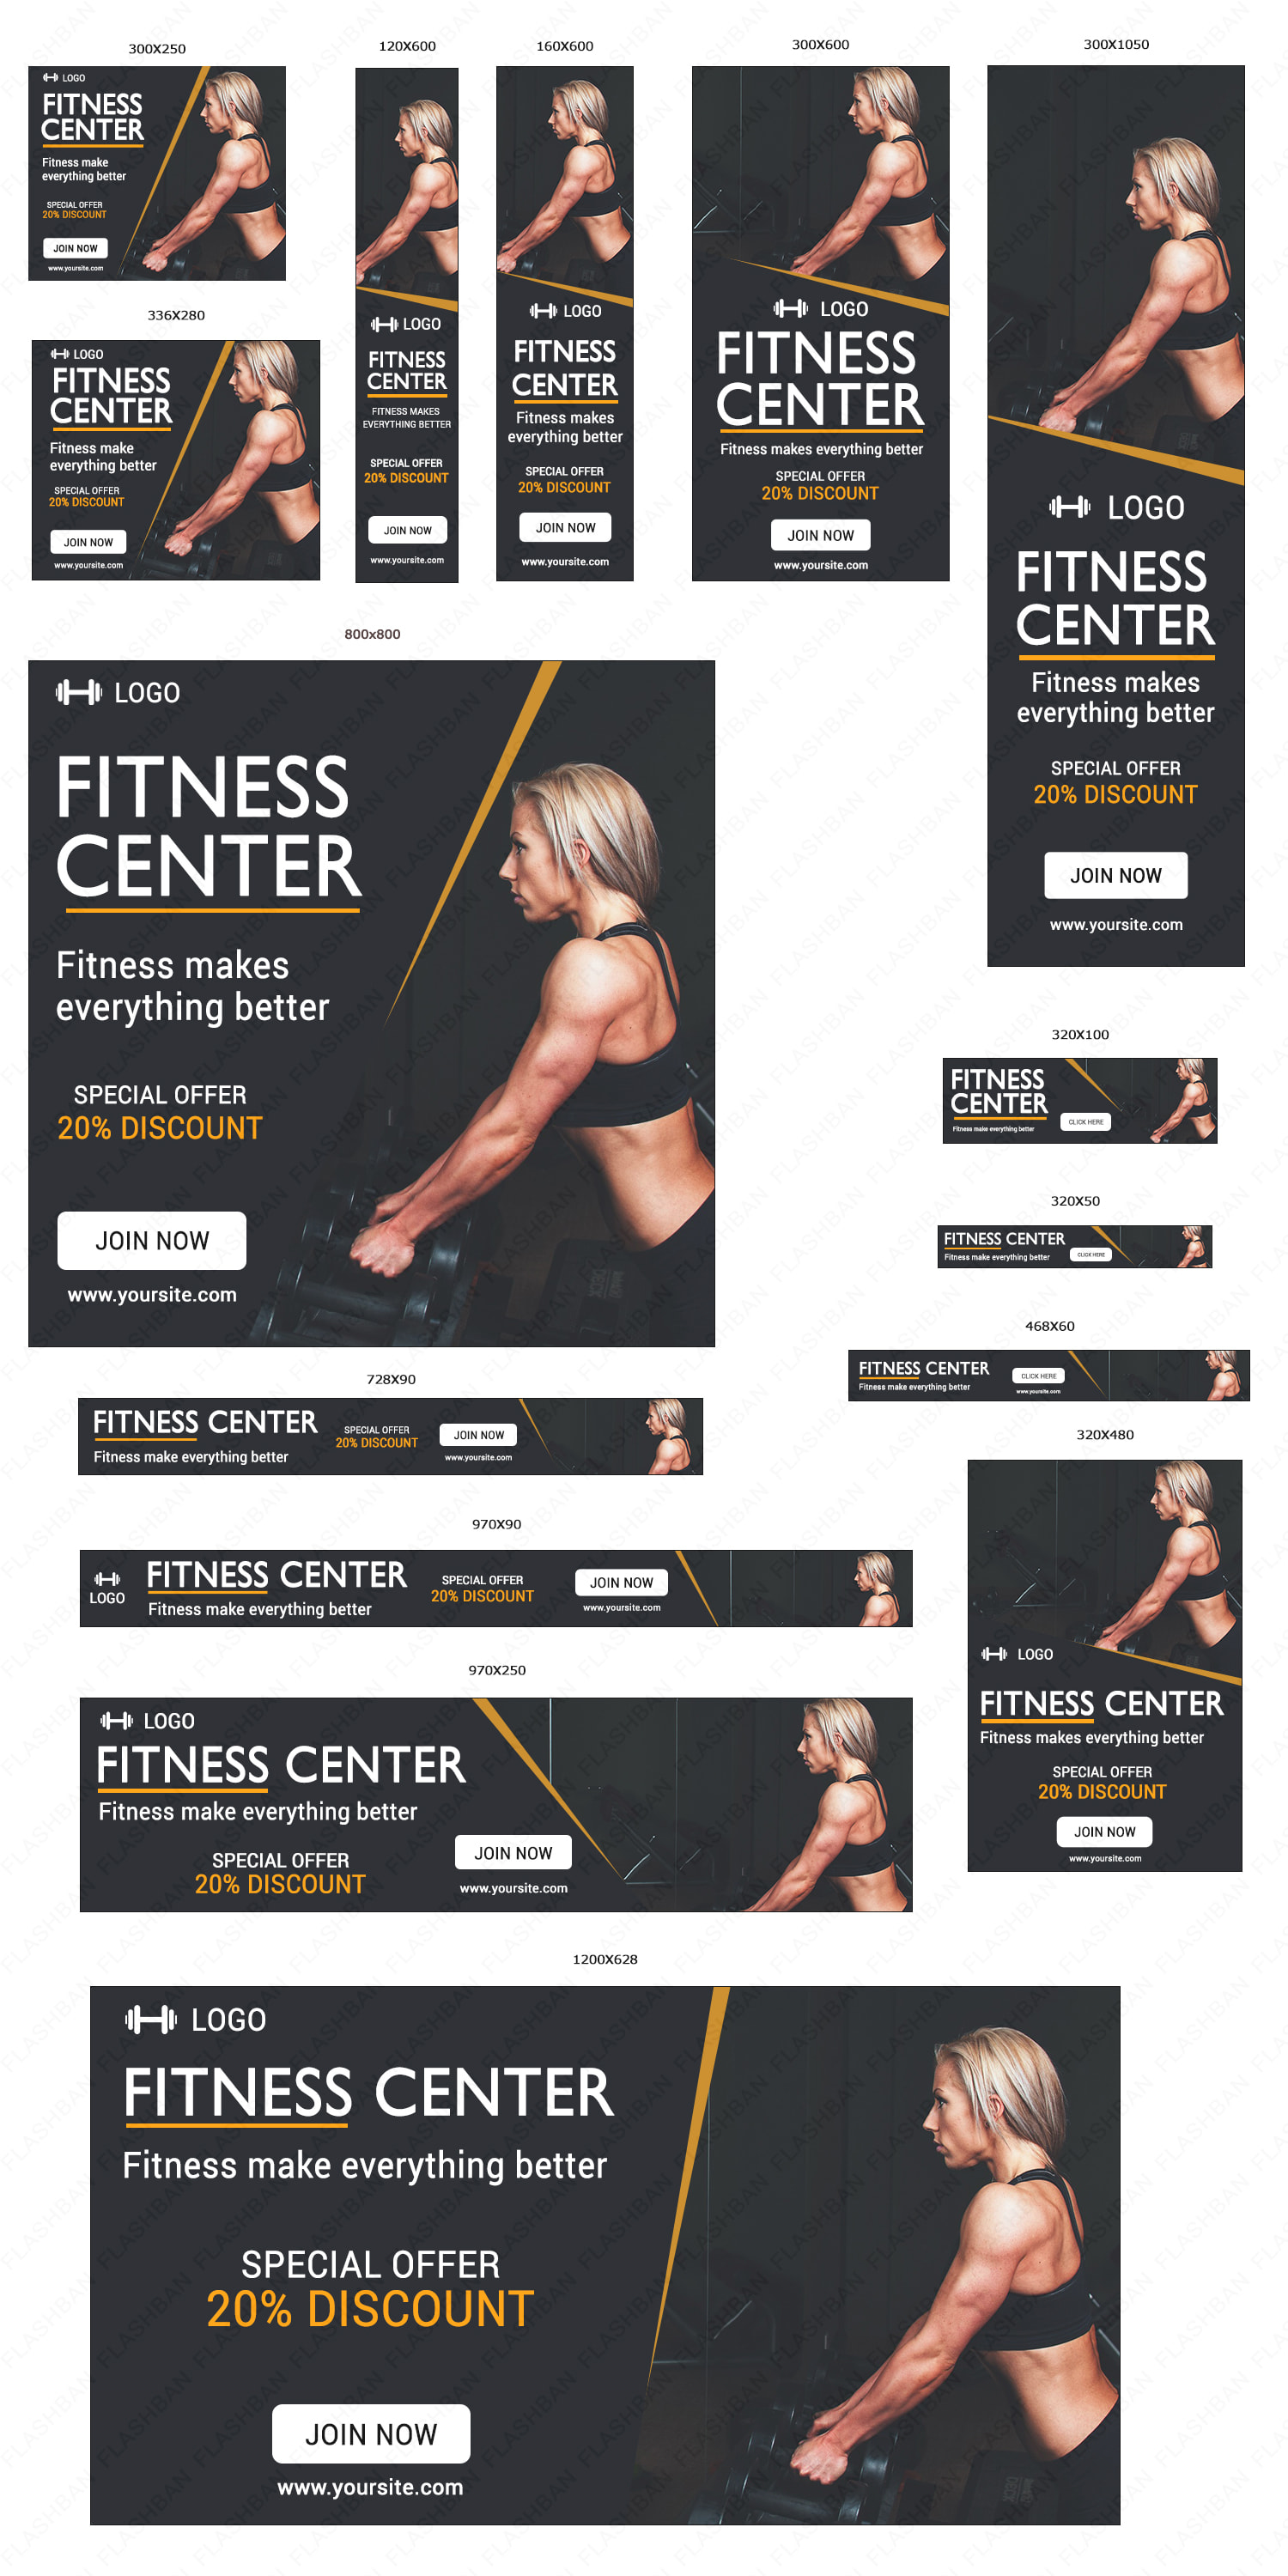 Fitness cente Ad Banner